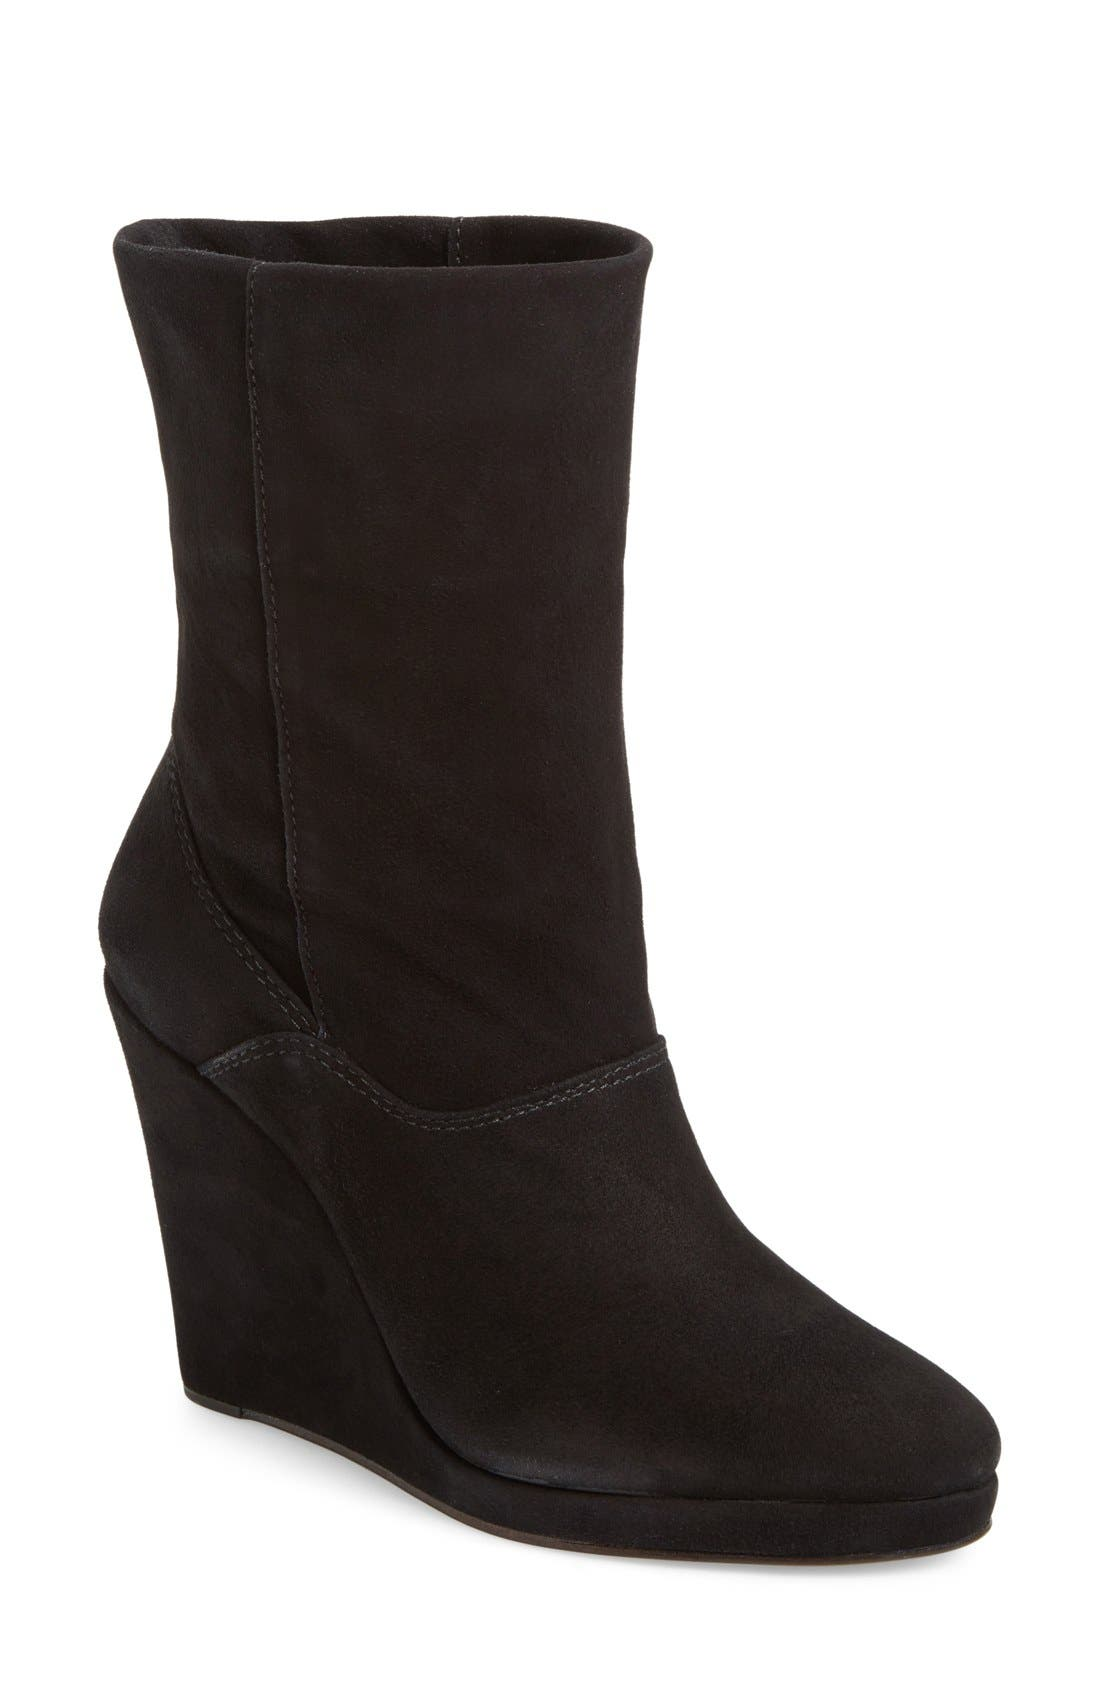 M4D3 Melanie Wedge Boot,                         Main,                         color, 001